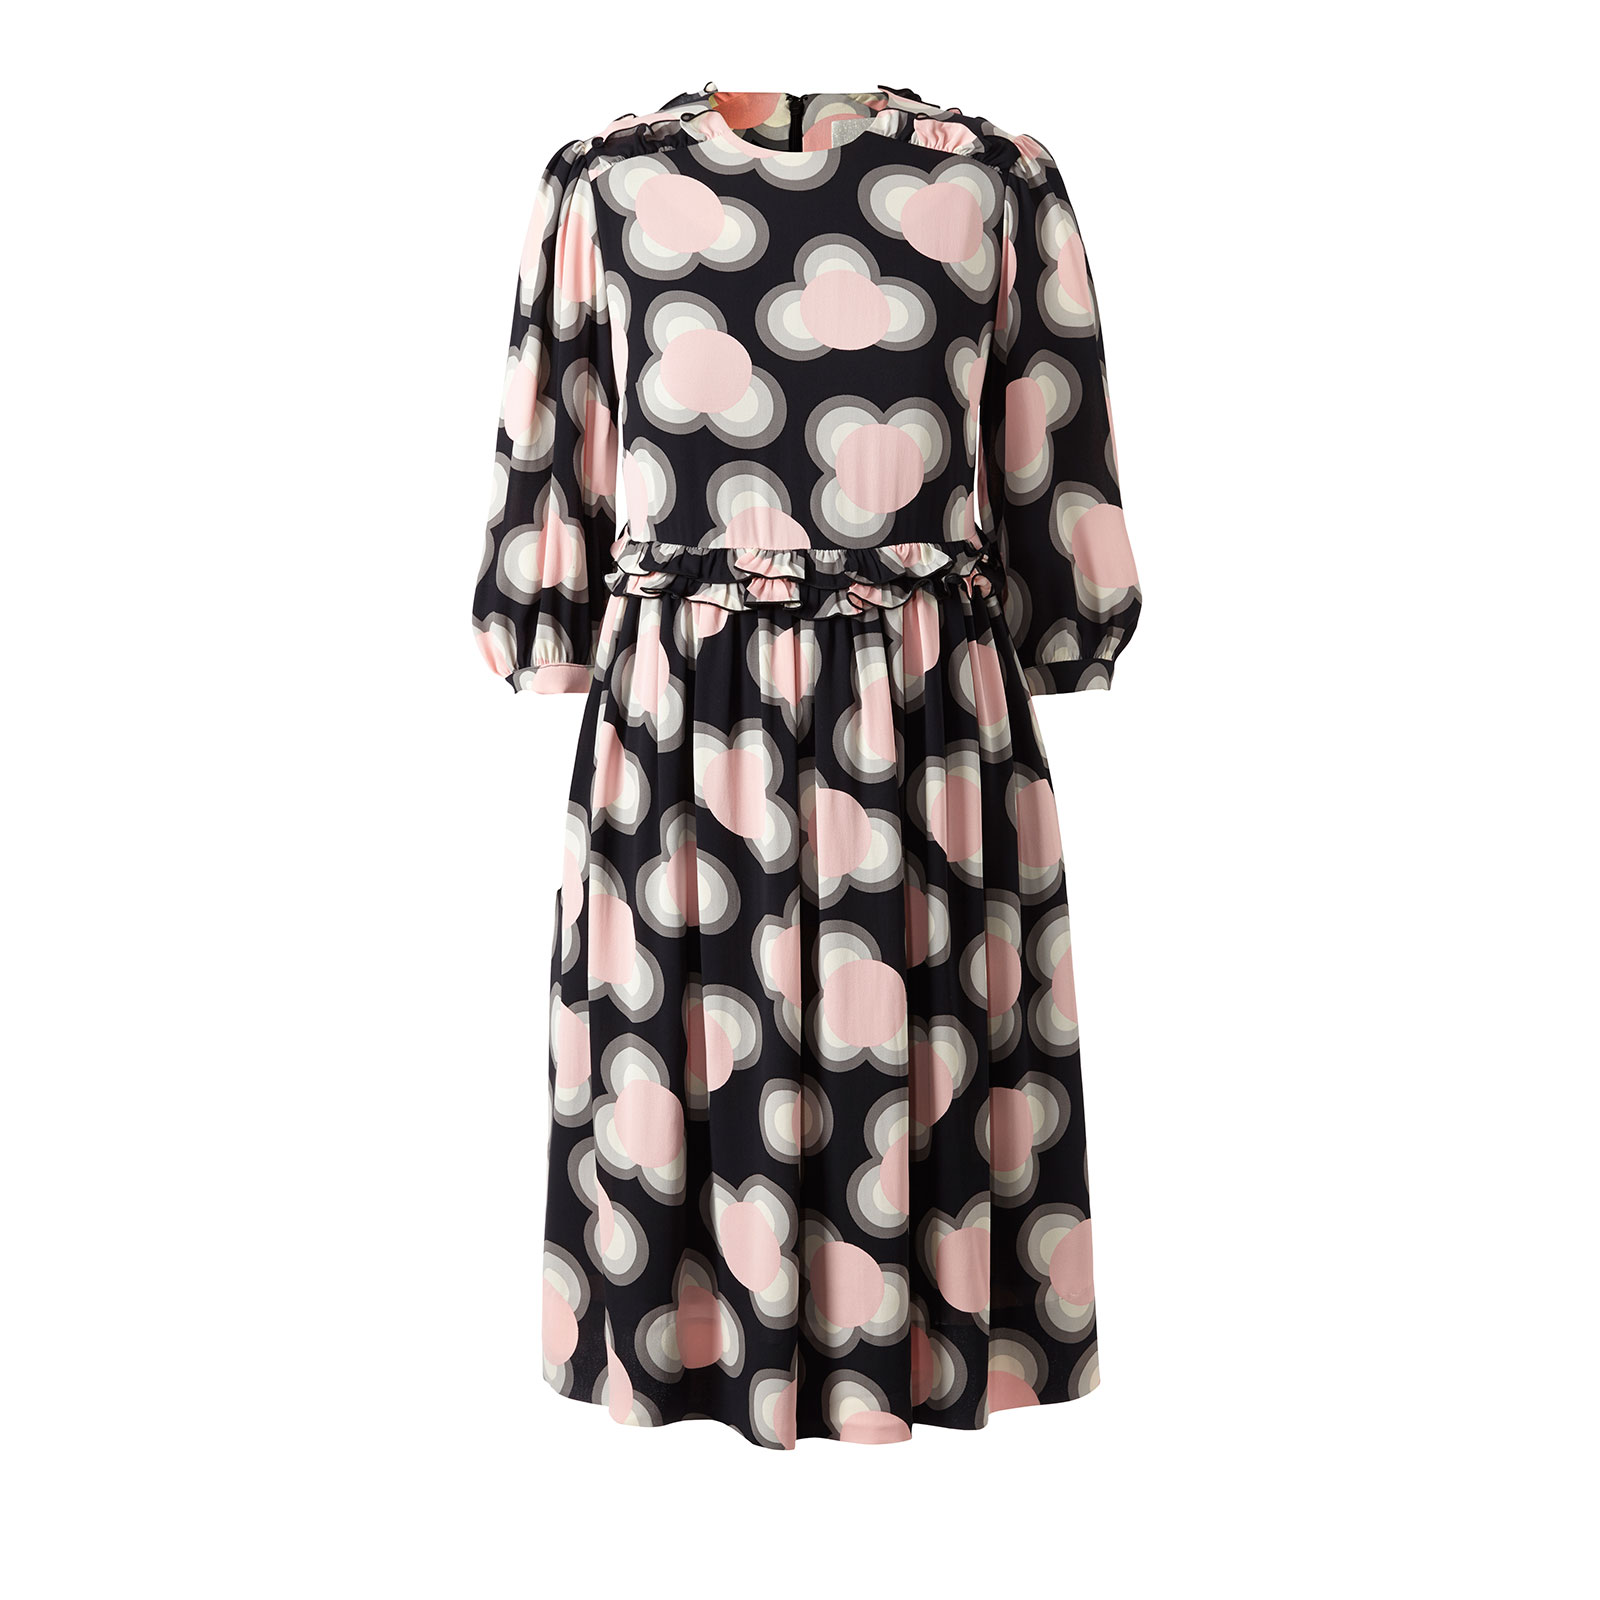 Cou Cou Gathered Day Dress   The Spring Summer 2016 Collection by Orla Kiely is a pattern lovers dream, feminine but not too sickly sweet